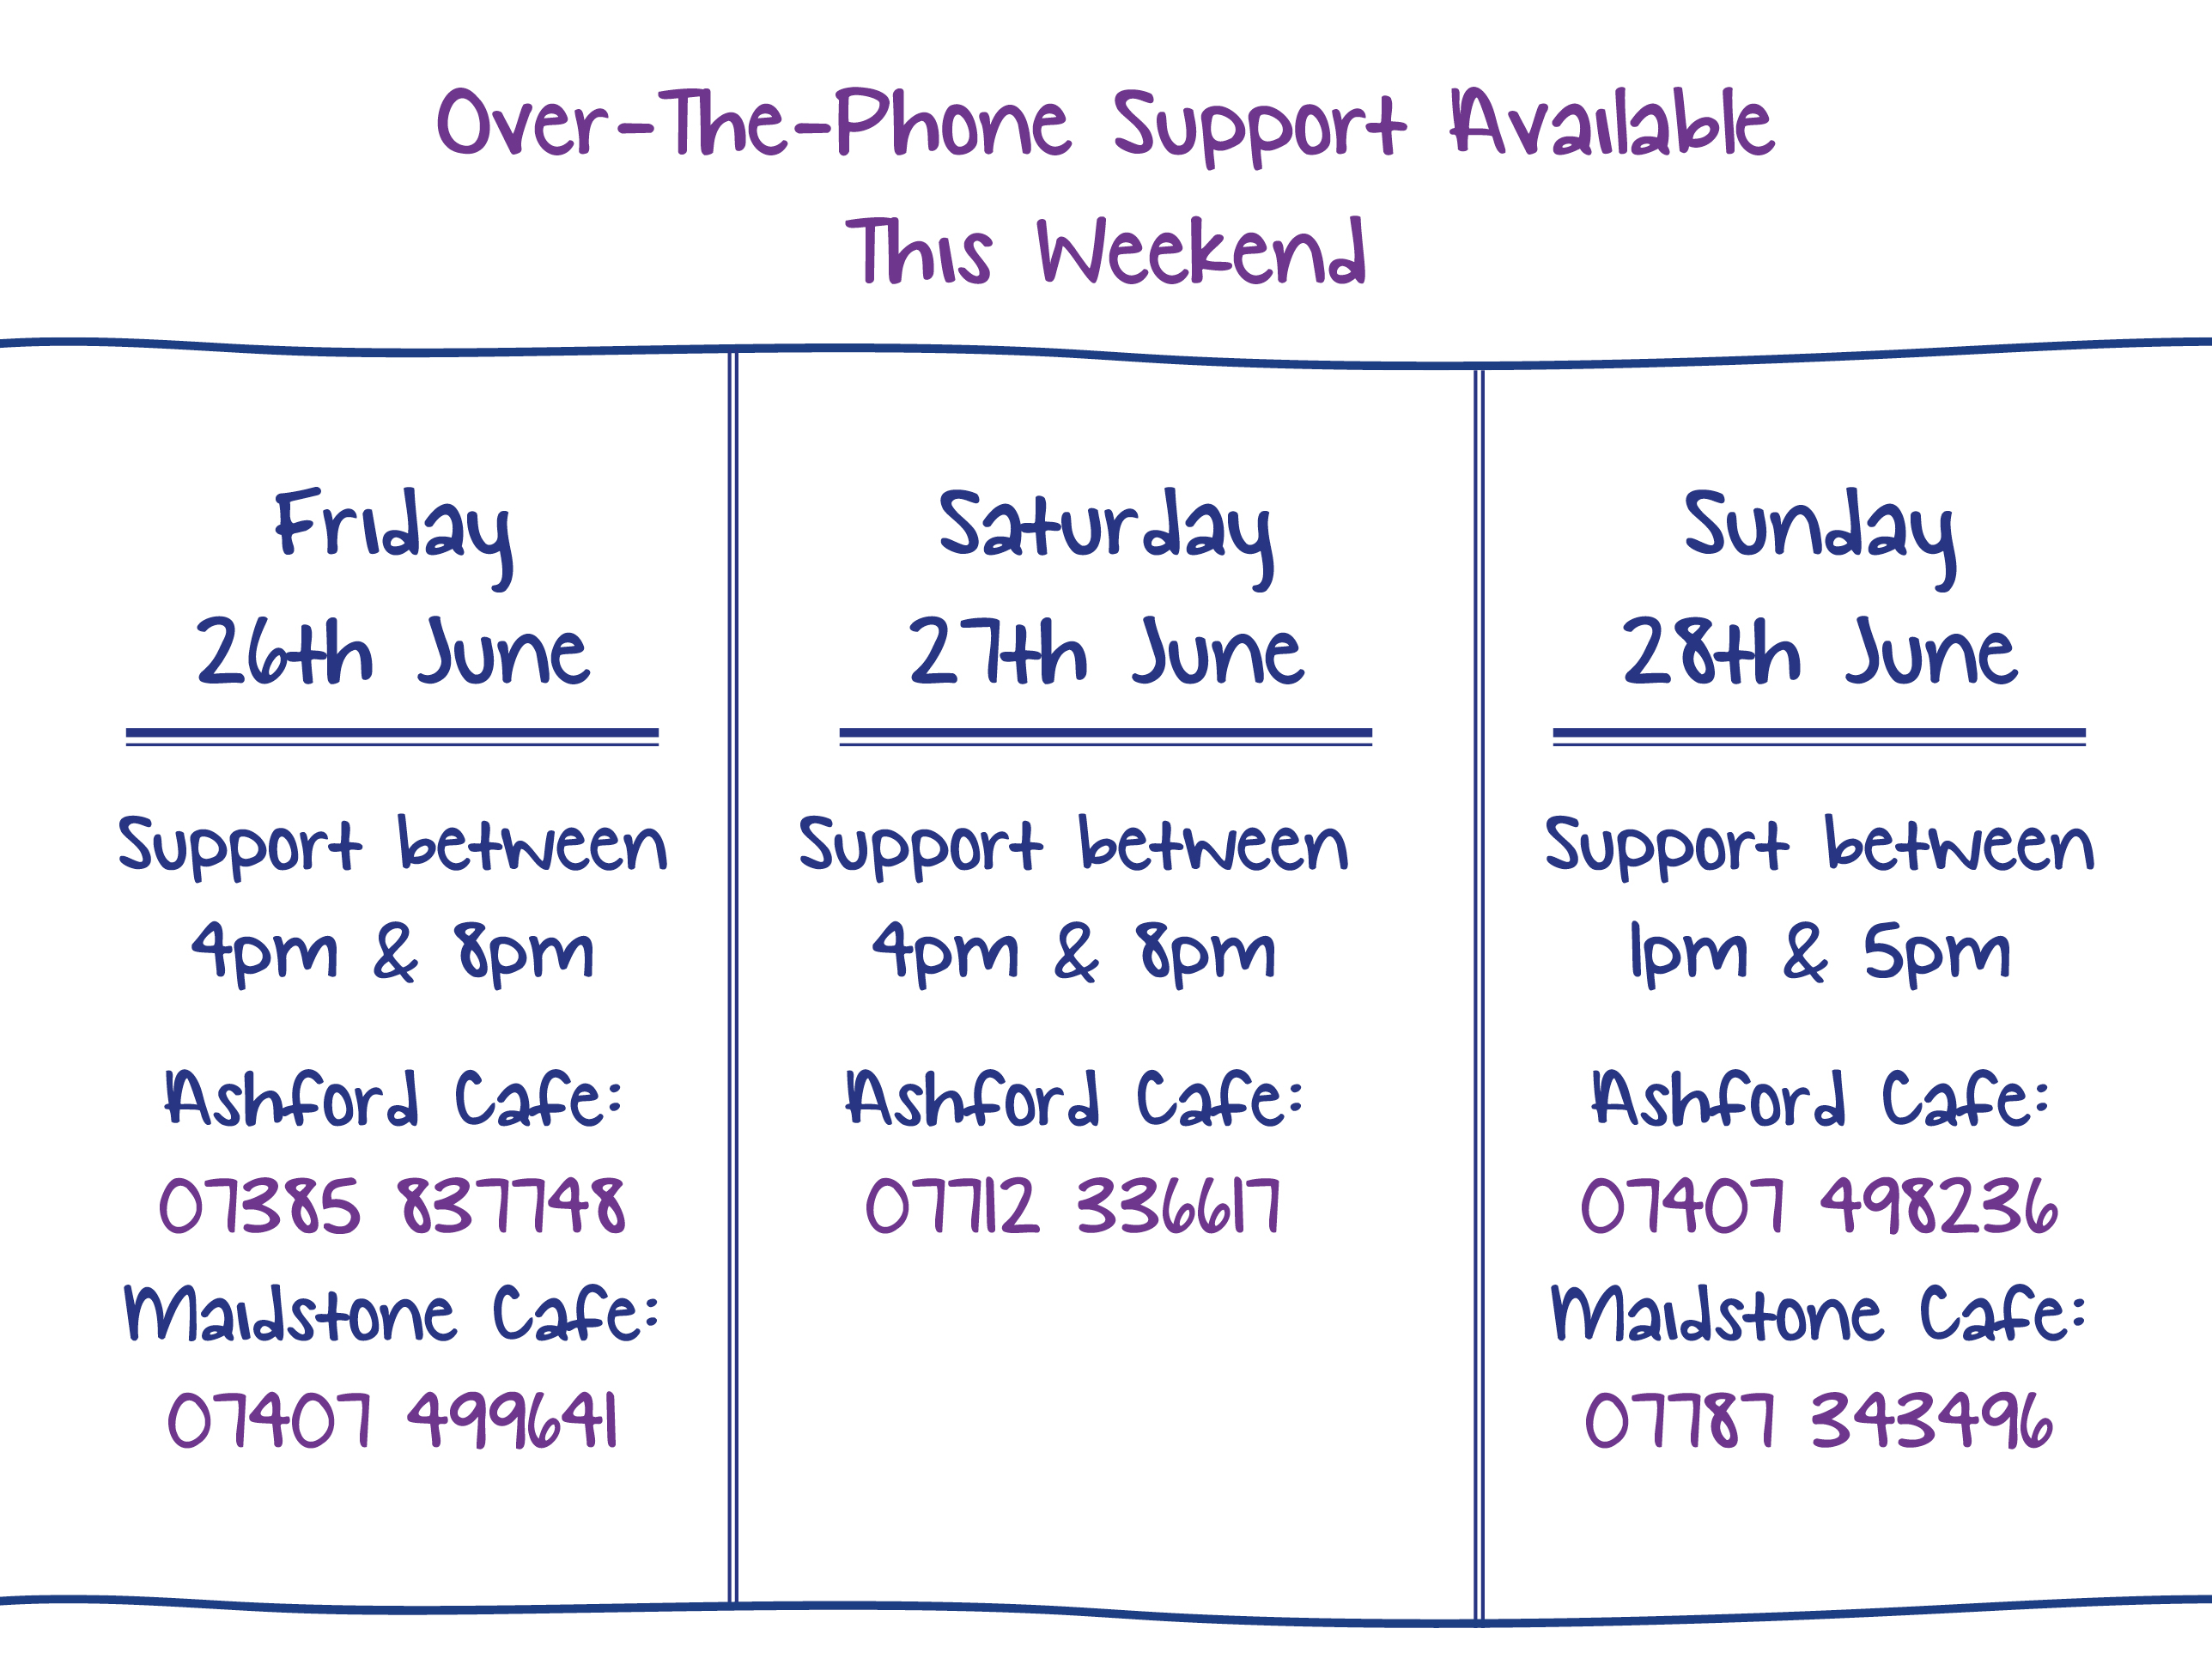 Over-The-Phone Support Available This Weekend. Friday 26th June. Support between 4pm & 8pm Ashford Cafe: 07385 837748 Maidstone Cafe: 07407 499641. Saturday 27th June. Support between 4pm & 8pm Ashford Cafe: 07712 336617. Sunday 28th June. Support between 1pm & 5pm Ashford Cafe: 07407 498236 Maidstone Cafe: 07787 343496